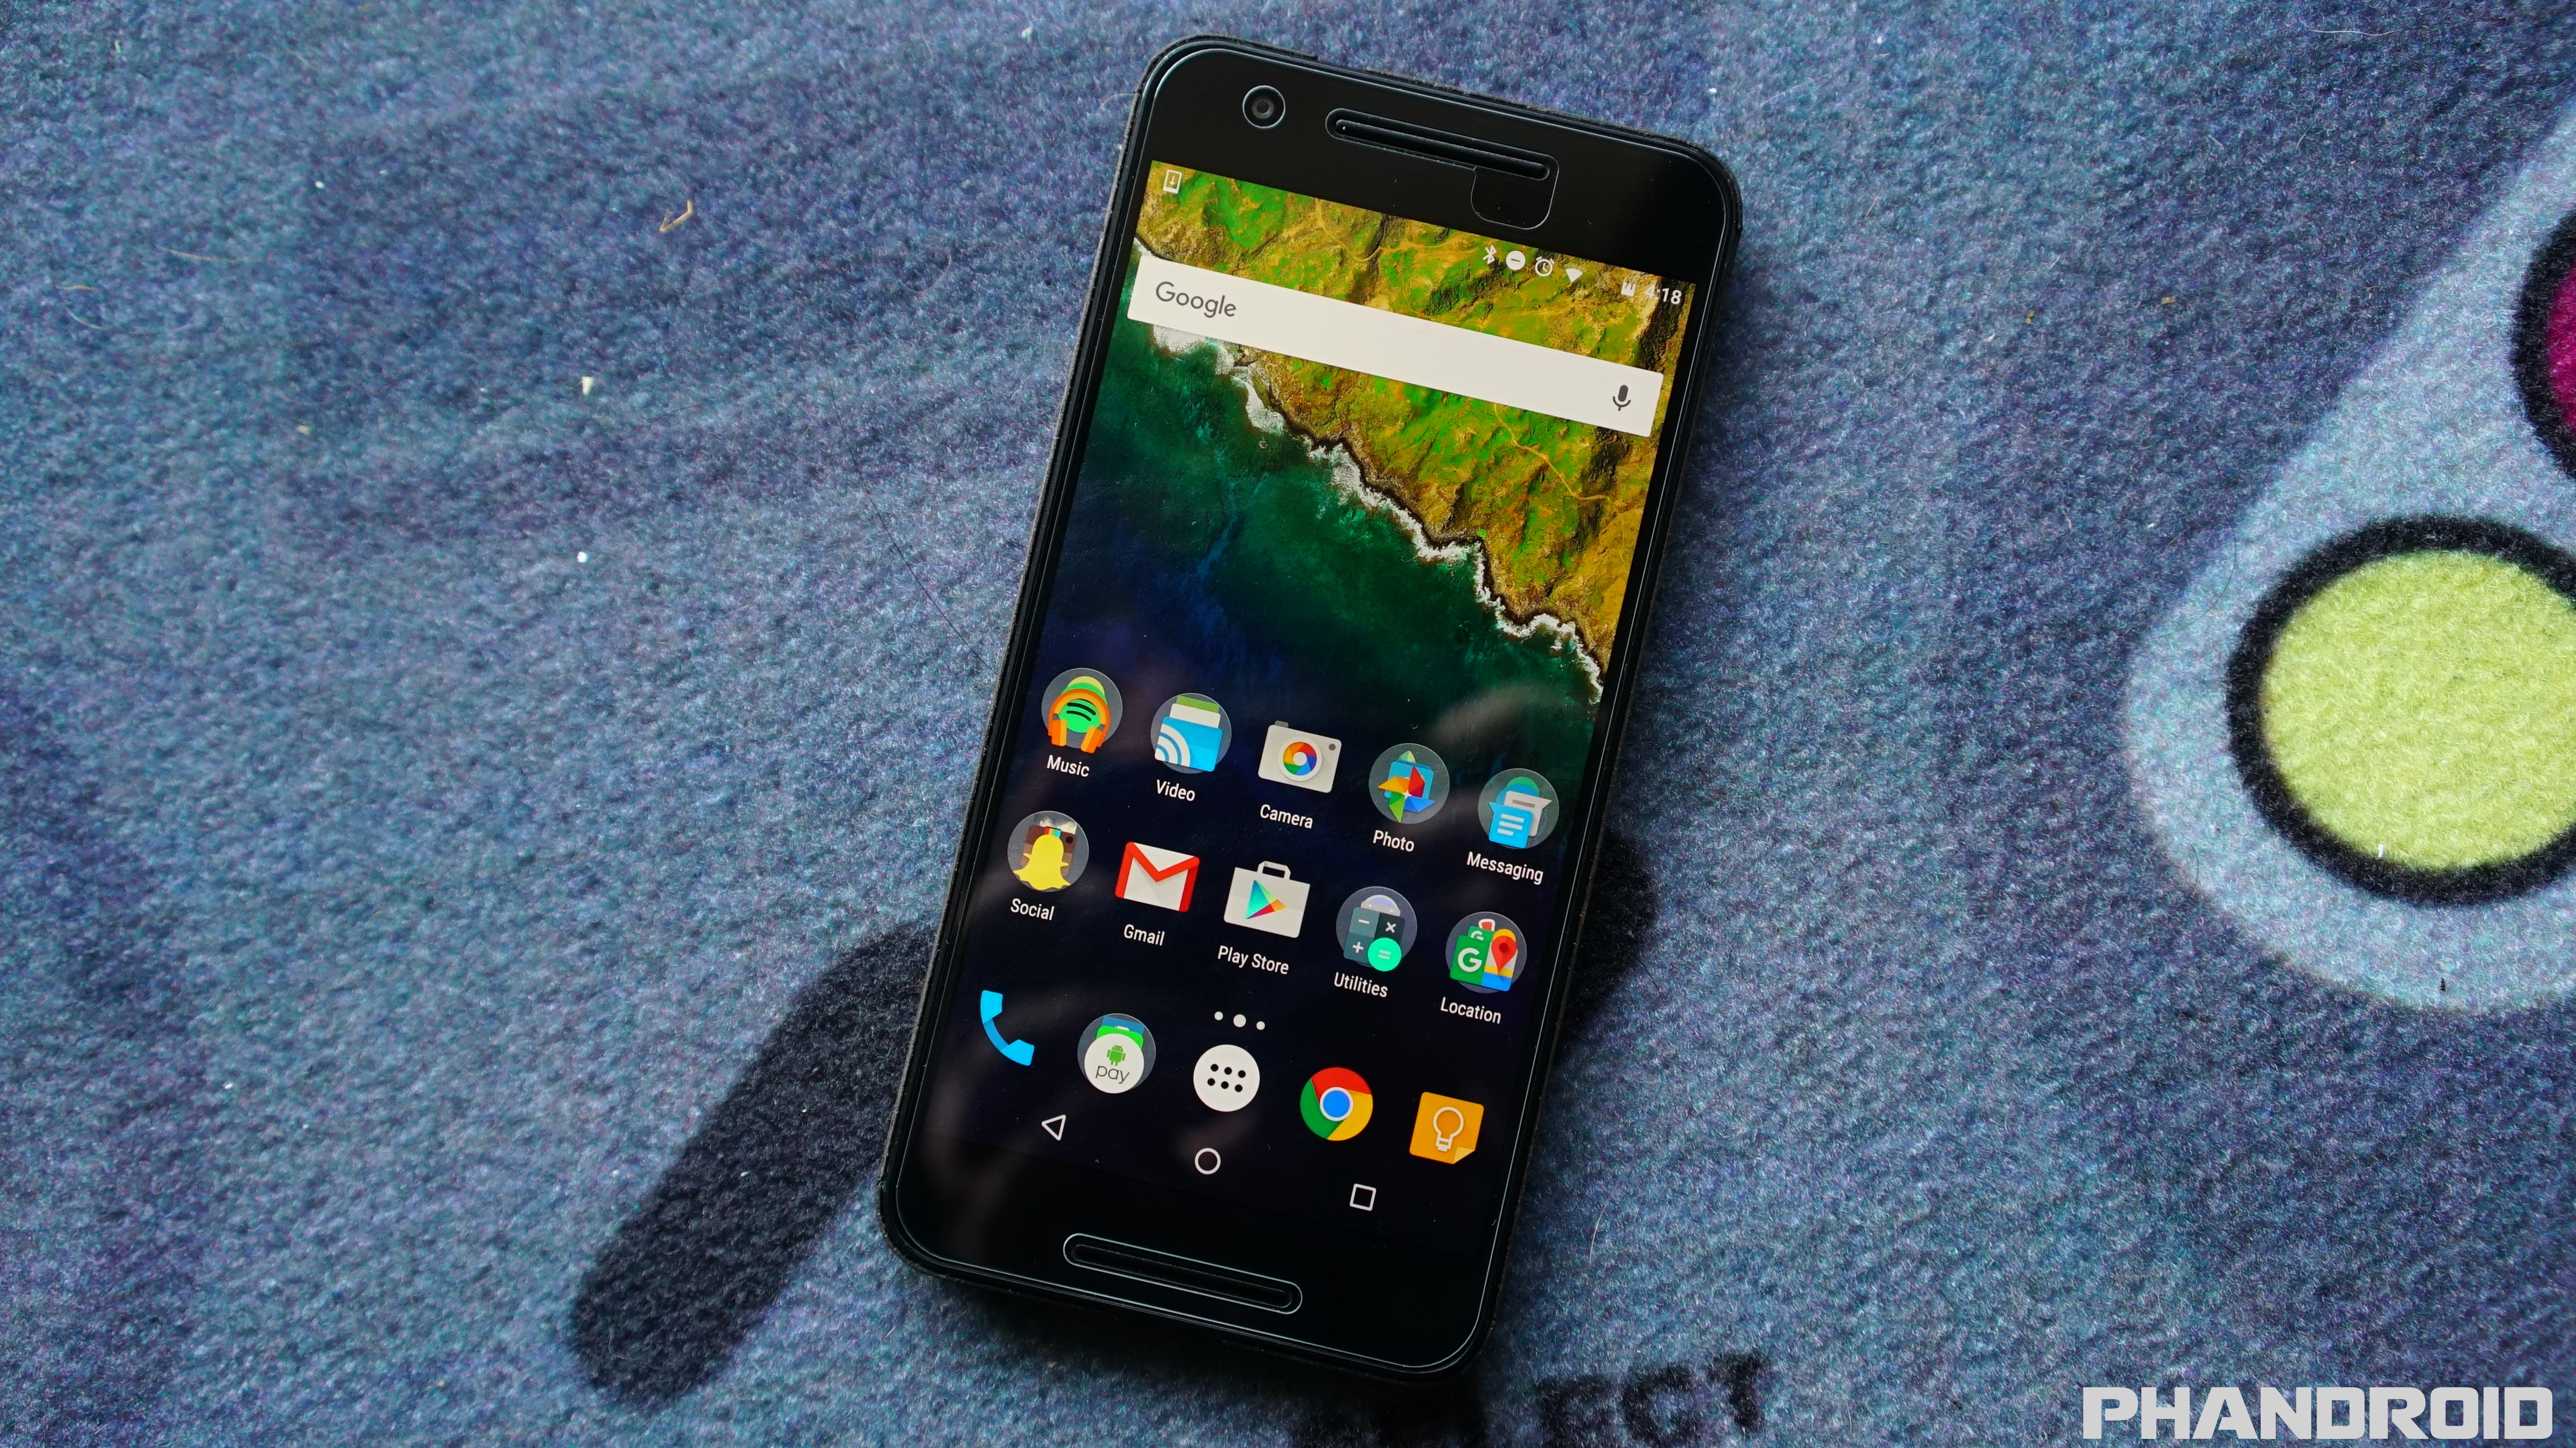 Nexus 6P owners will soon be able to claim up to $400 from